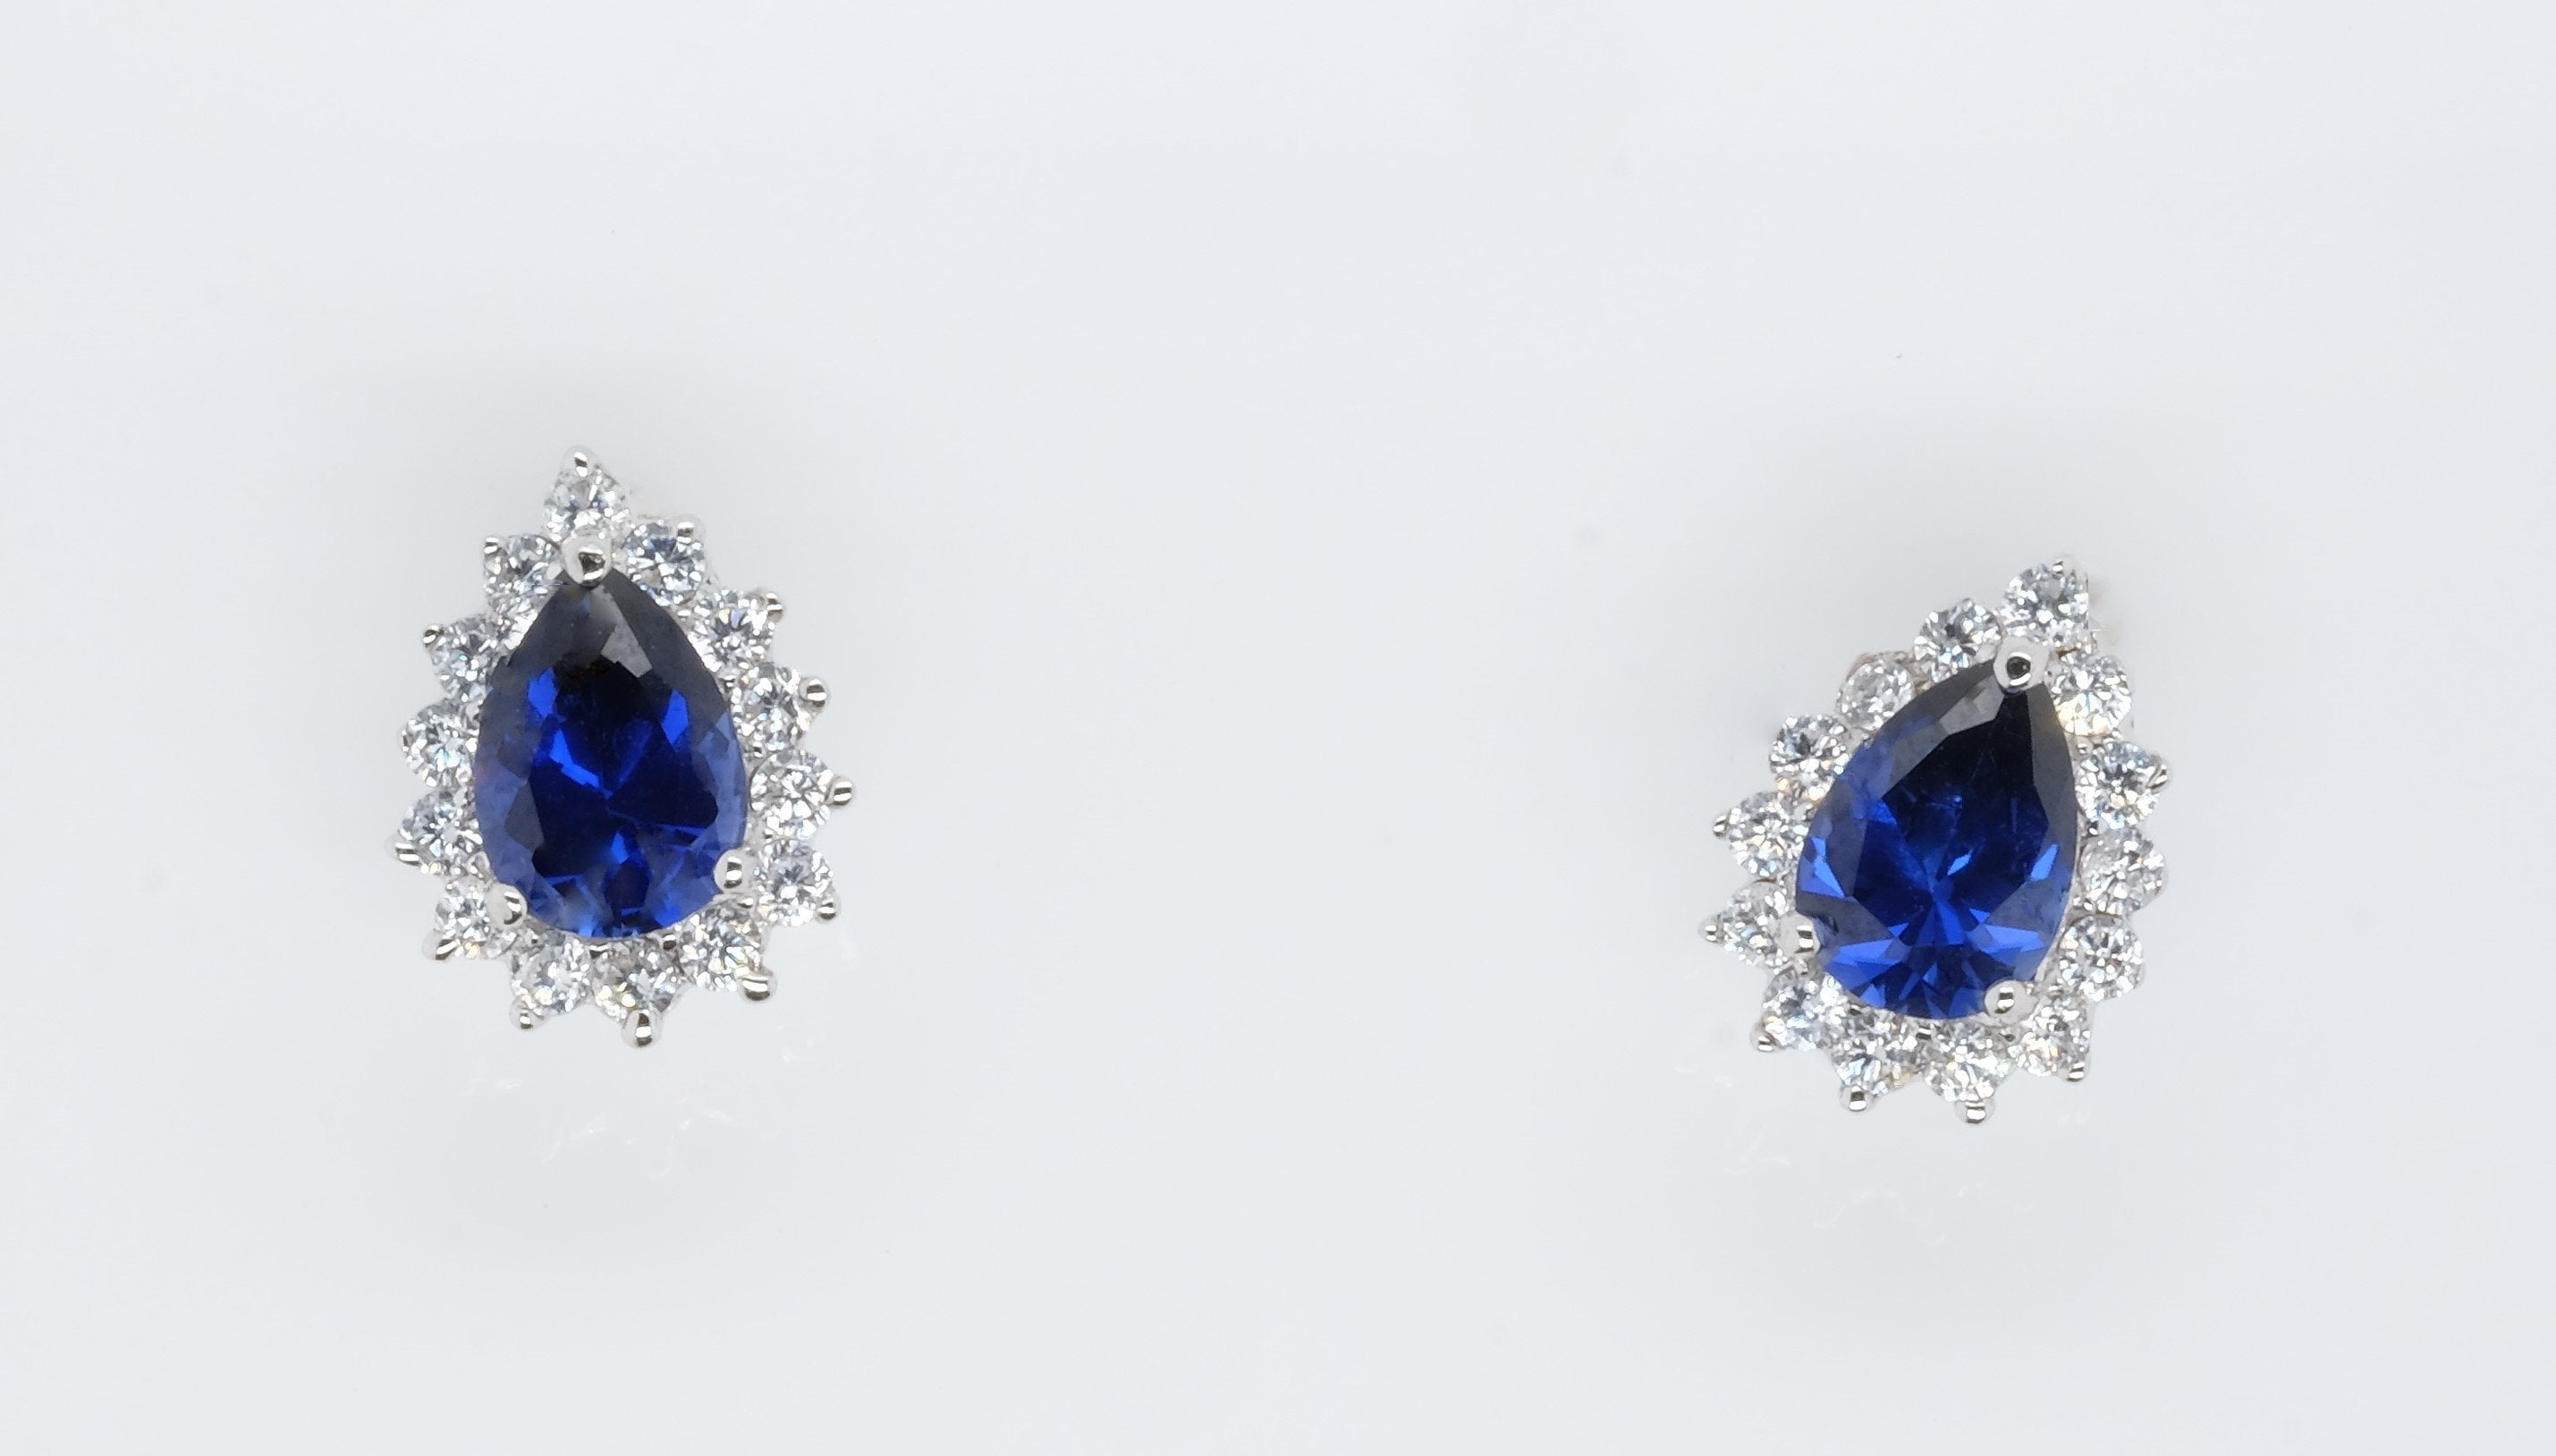 Goddess Astraea Mesmerise Blue Teardrop Earrings